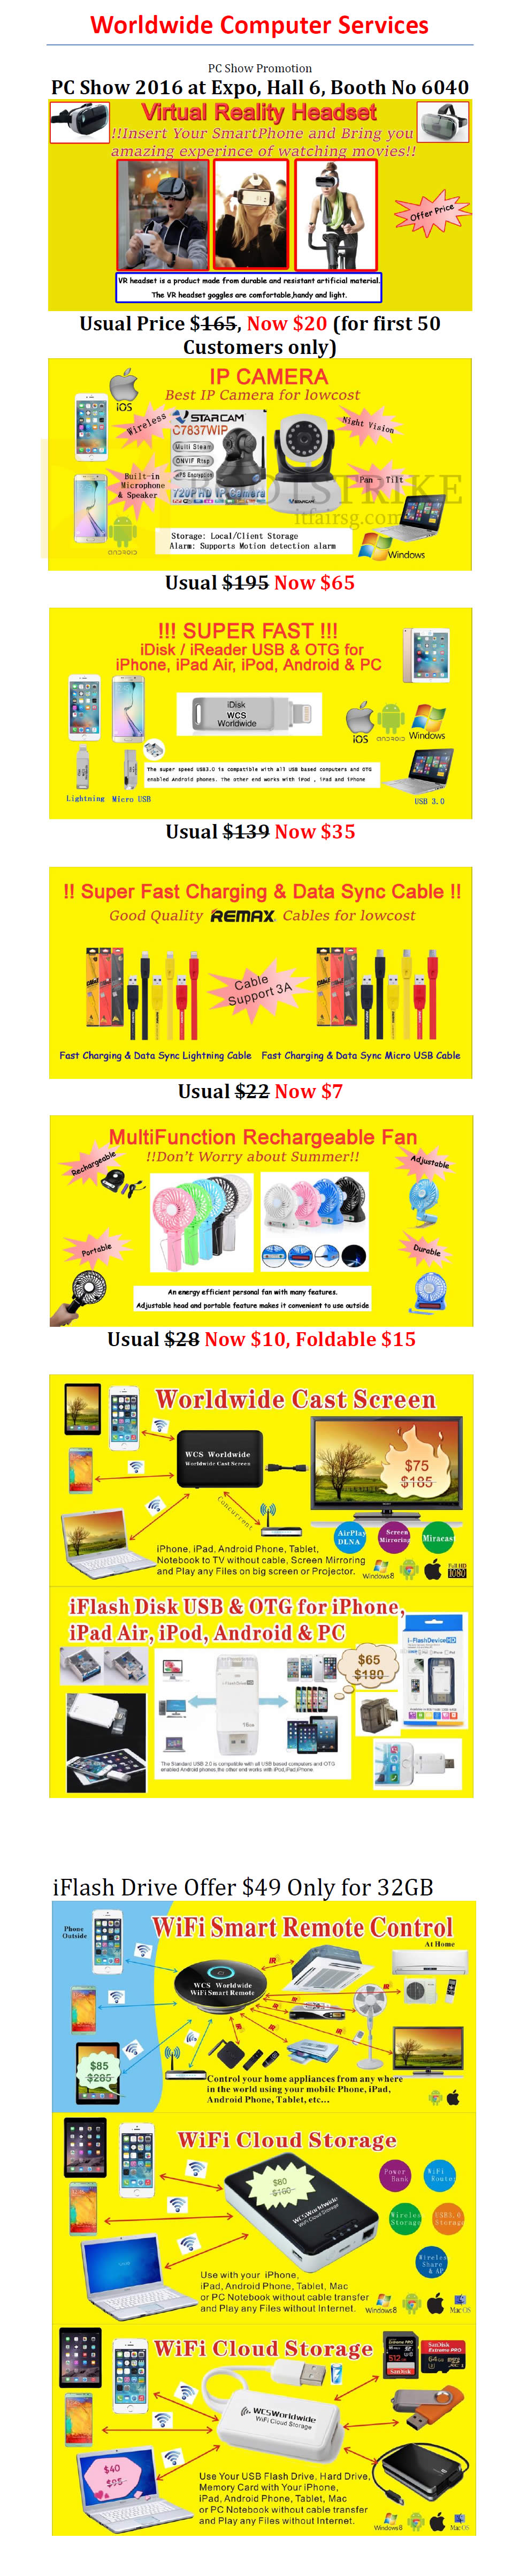 PC SHOW 2016 price list image brochure of Worldwide Computer Services Virtual Reality Headset, IP Camera, Data Sync Cable, Rechargeable Fan, Cast Screen, Wifi Remote Control, Wifi Cloud Storage